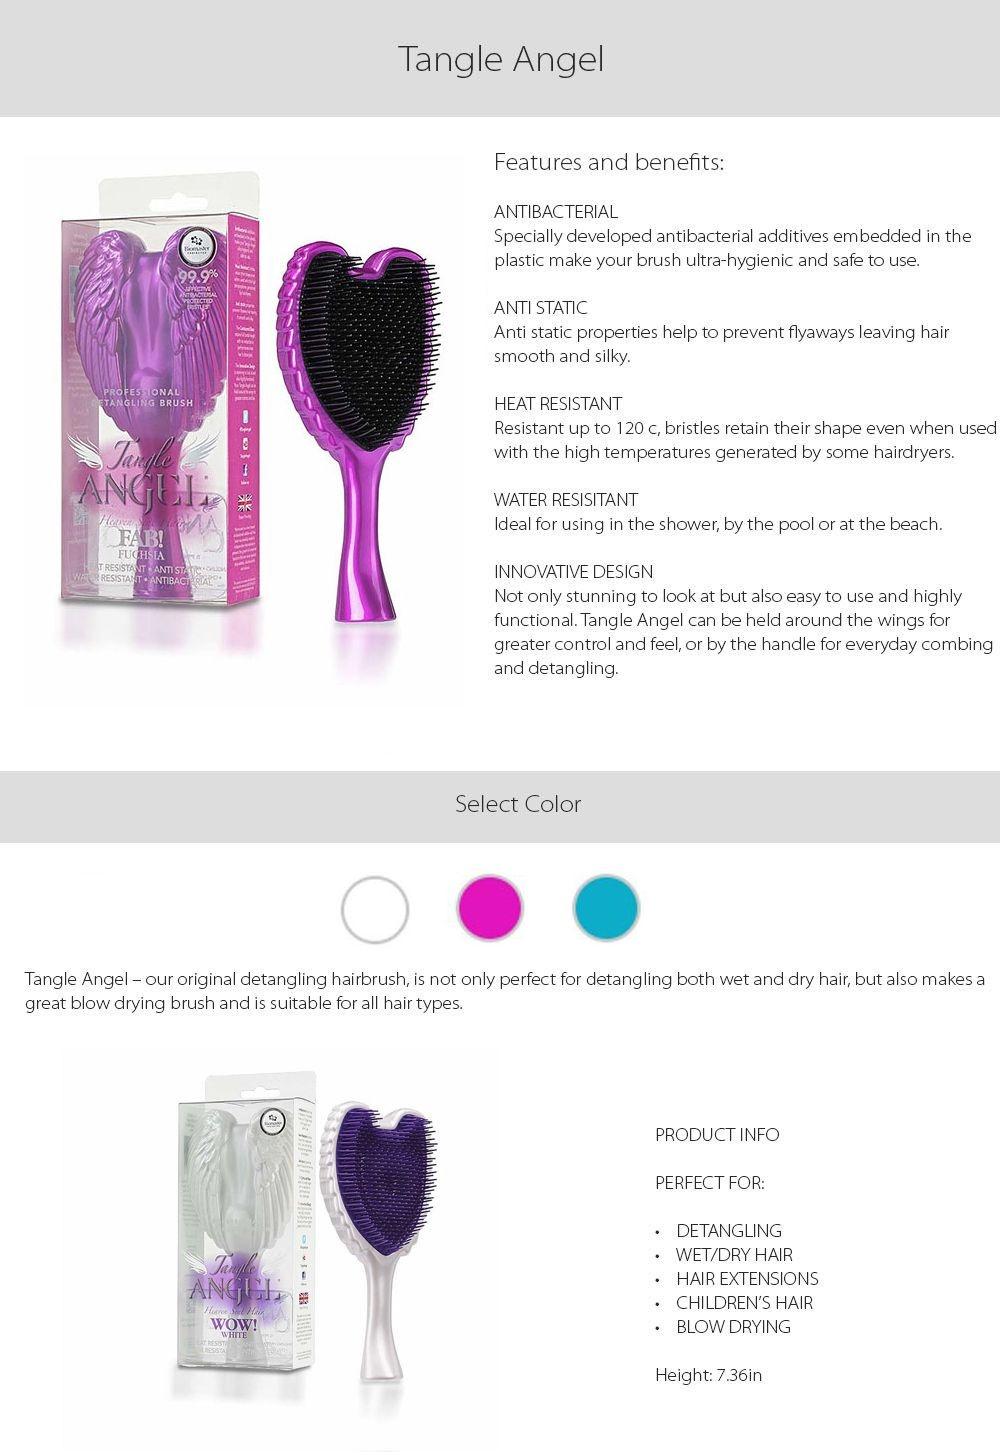 Angel Tangle Hairbrush Detangle Your Hair